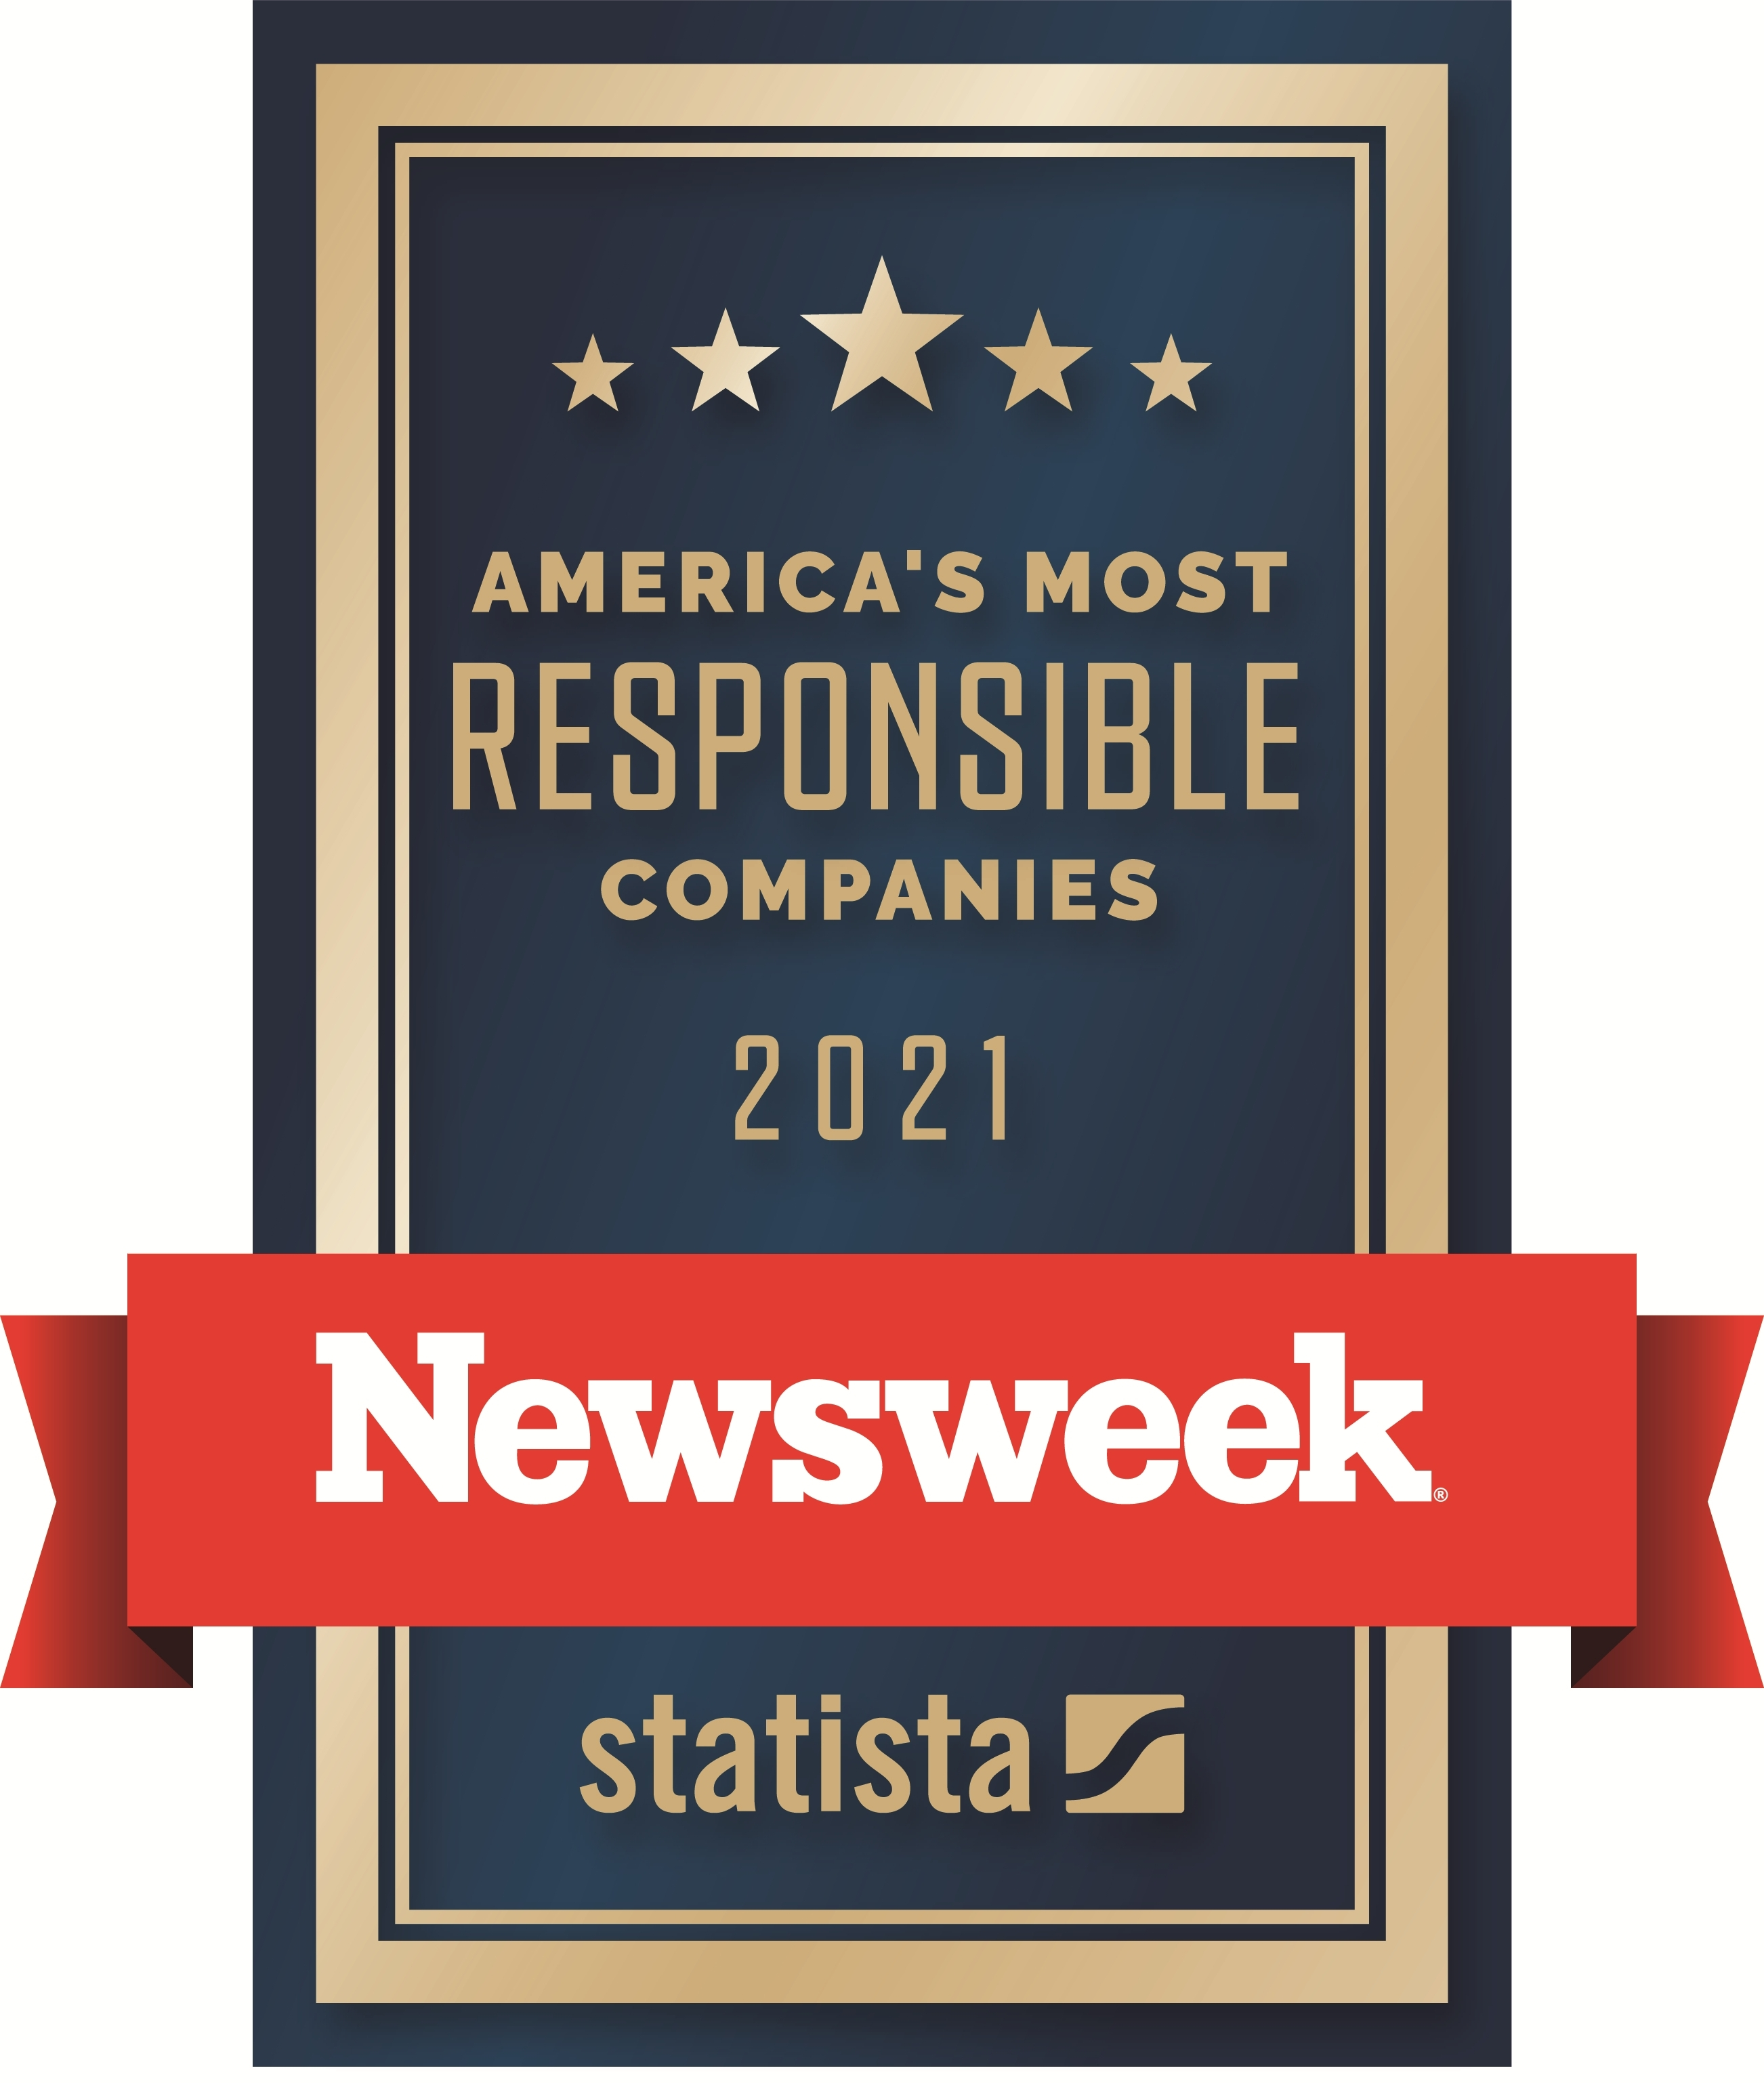 "For the second consecutive year, Ryder has been named by Newsweek to its annual list of ""America's Most Responsible Companies"" for 2021 recognizing the company's ongoing commitment to corporate social responsibility efforts related to its environment, social, and corporate governance initiatives."